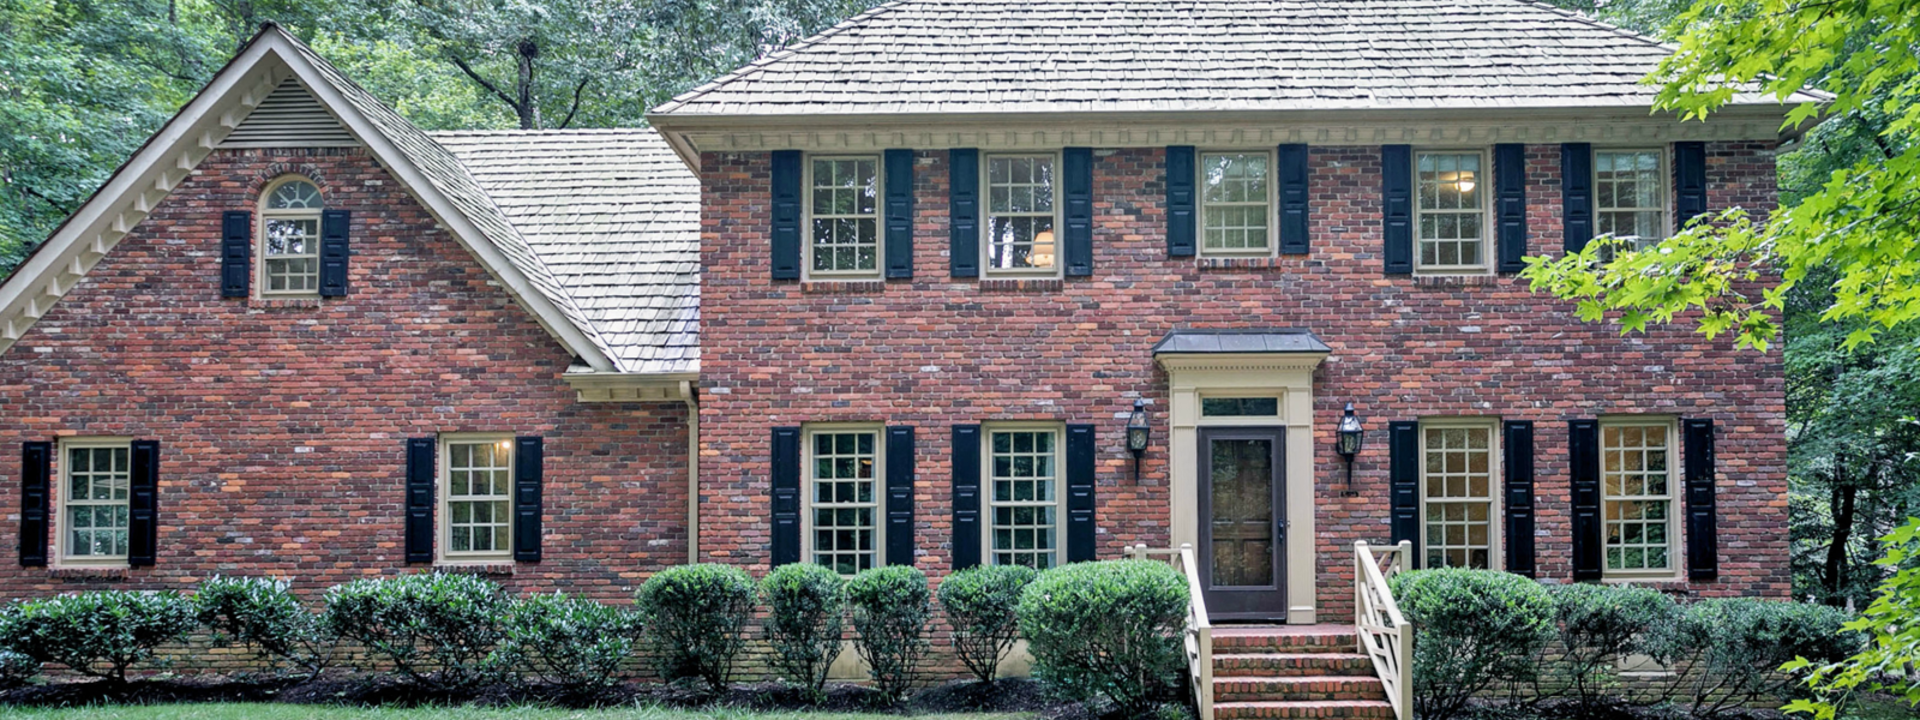 Gorgeous Brick Home For Sale in North Raleigh!